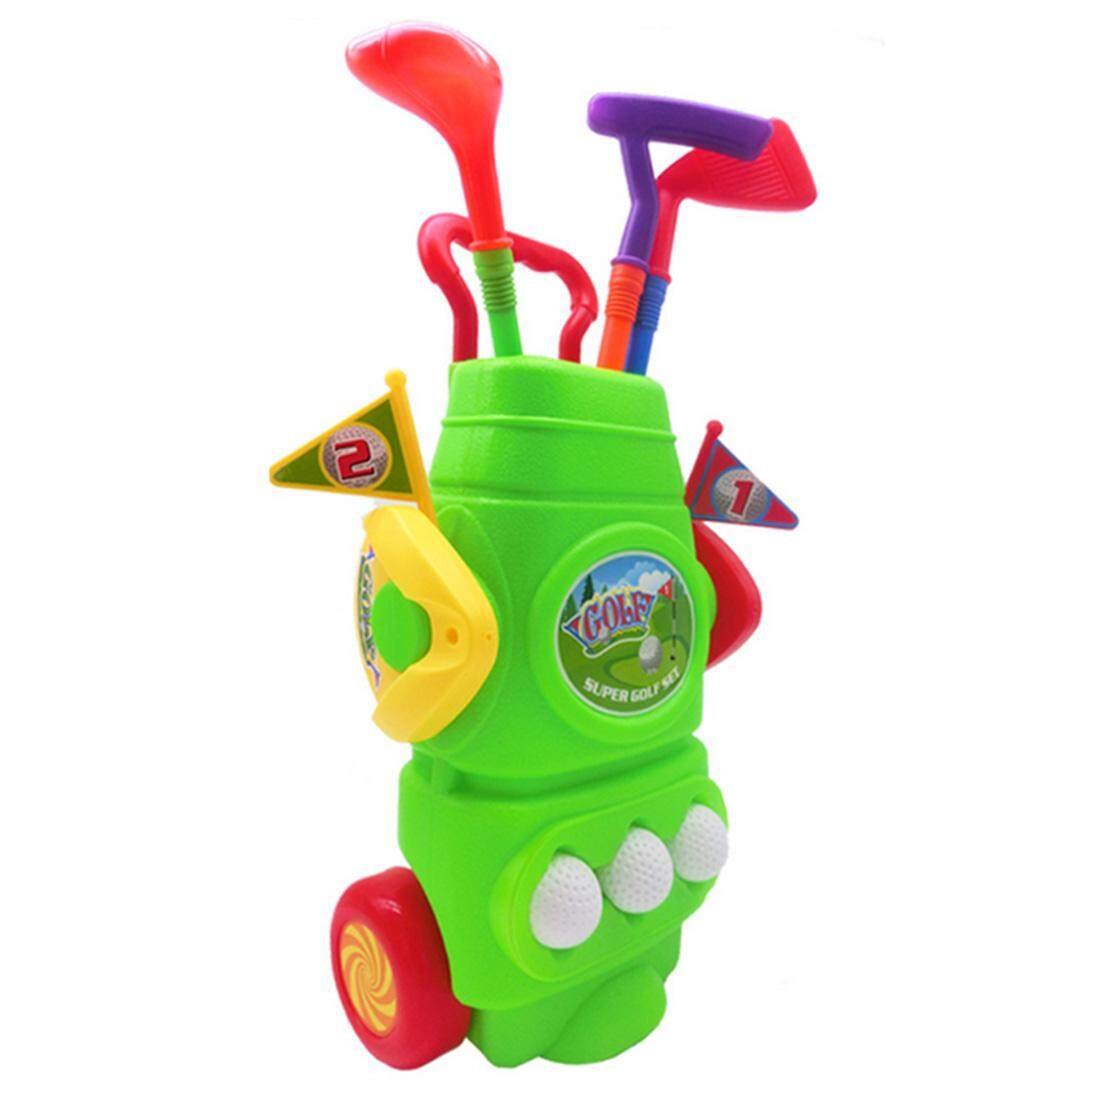 360wish 11pcs Gift Box Packed Children Plastic Golf Sports Toy Set Kids Golf Game Toy With 3 Clubs 2 Holes 3 Balls And 2 Flags - Green By Wish360.